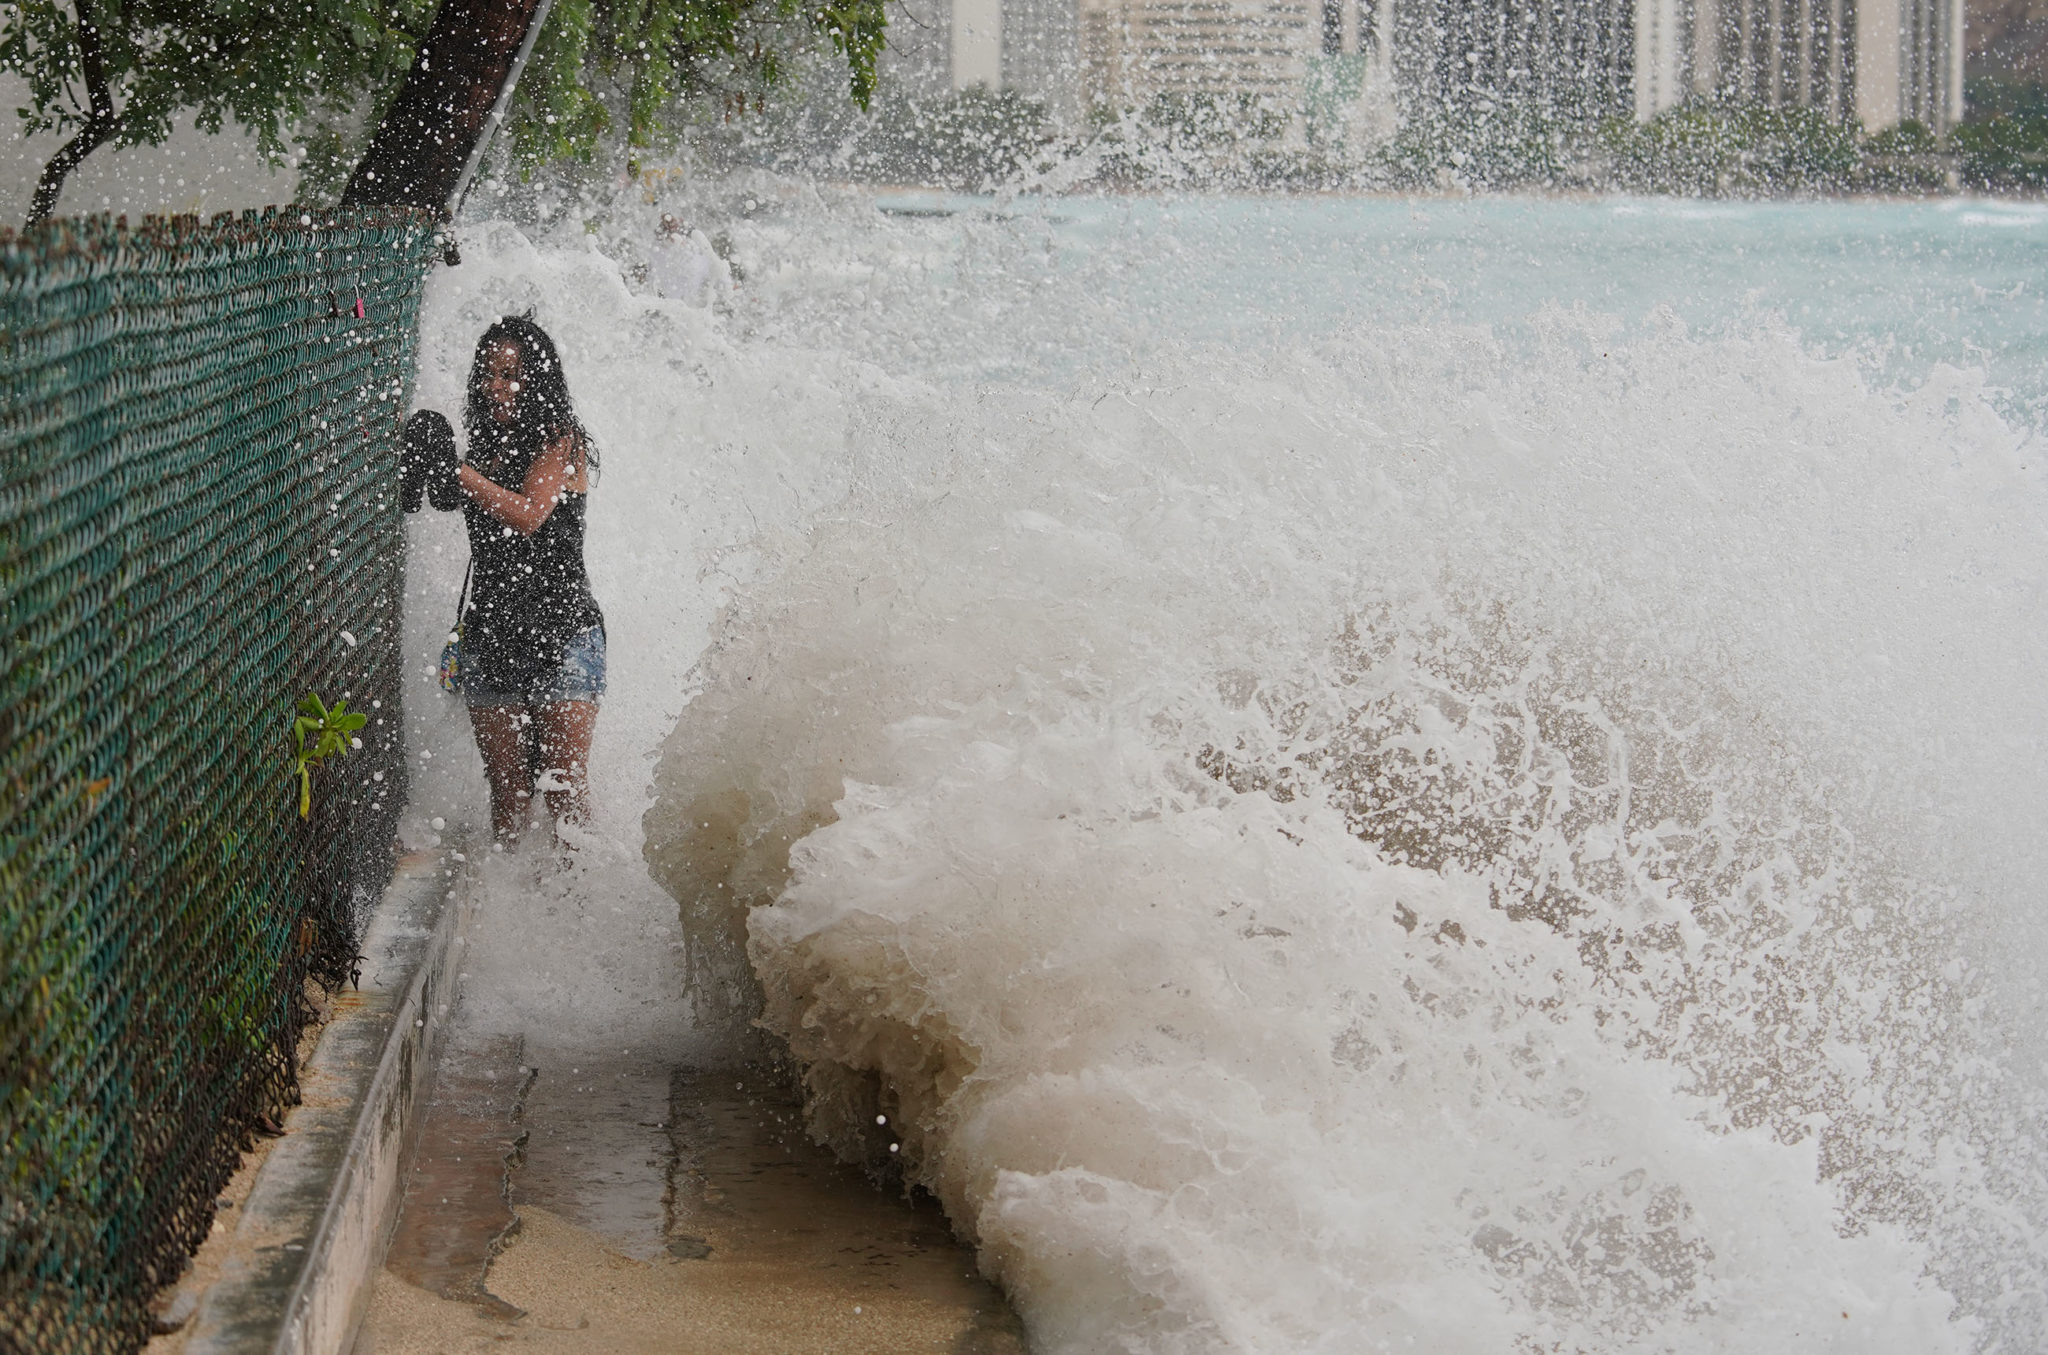 <p><strong>THE THREAT PASSES:</strong> High-altitude winds subdued the hurricane and pushed it away from Hawaii, although there was flooding on the Big Island, storm-related wildfires on Maui and big surf everywhere else, including near a woman walking next to the Outrigger Hotel in Honolulu. / Cory Lum</p>